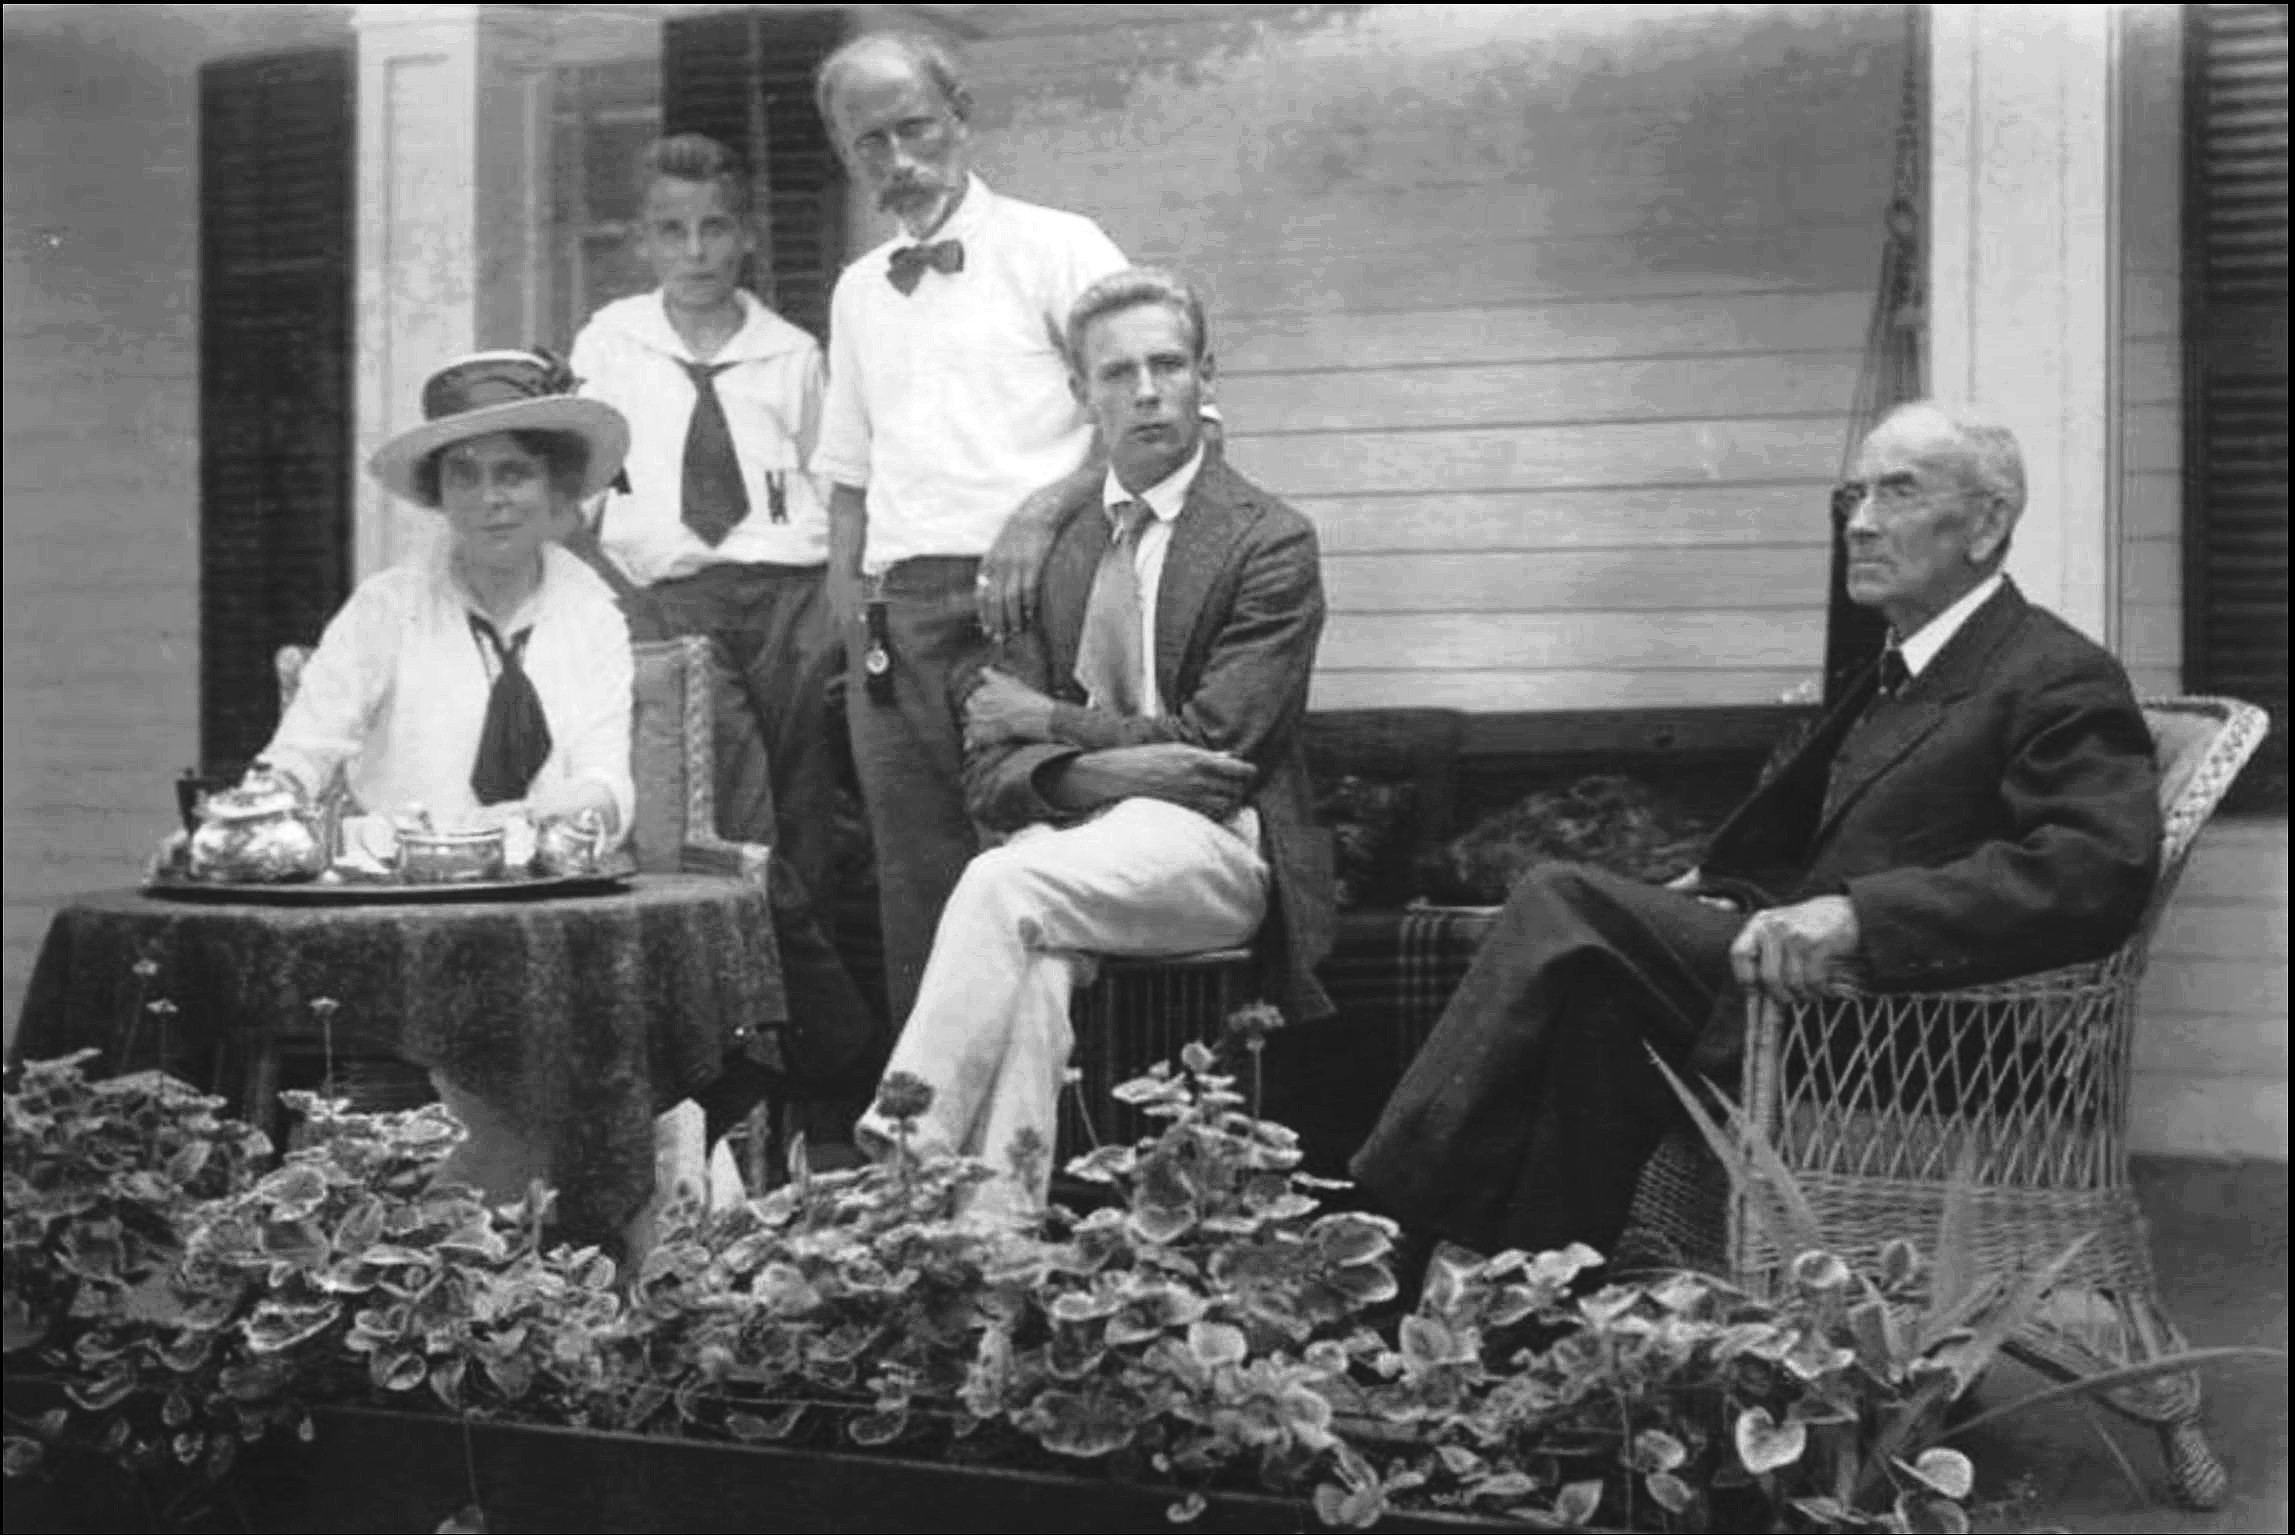 Family gathering, 1910s